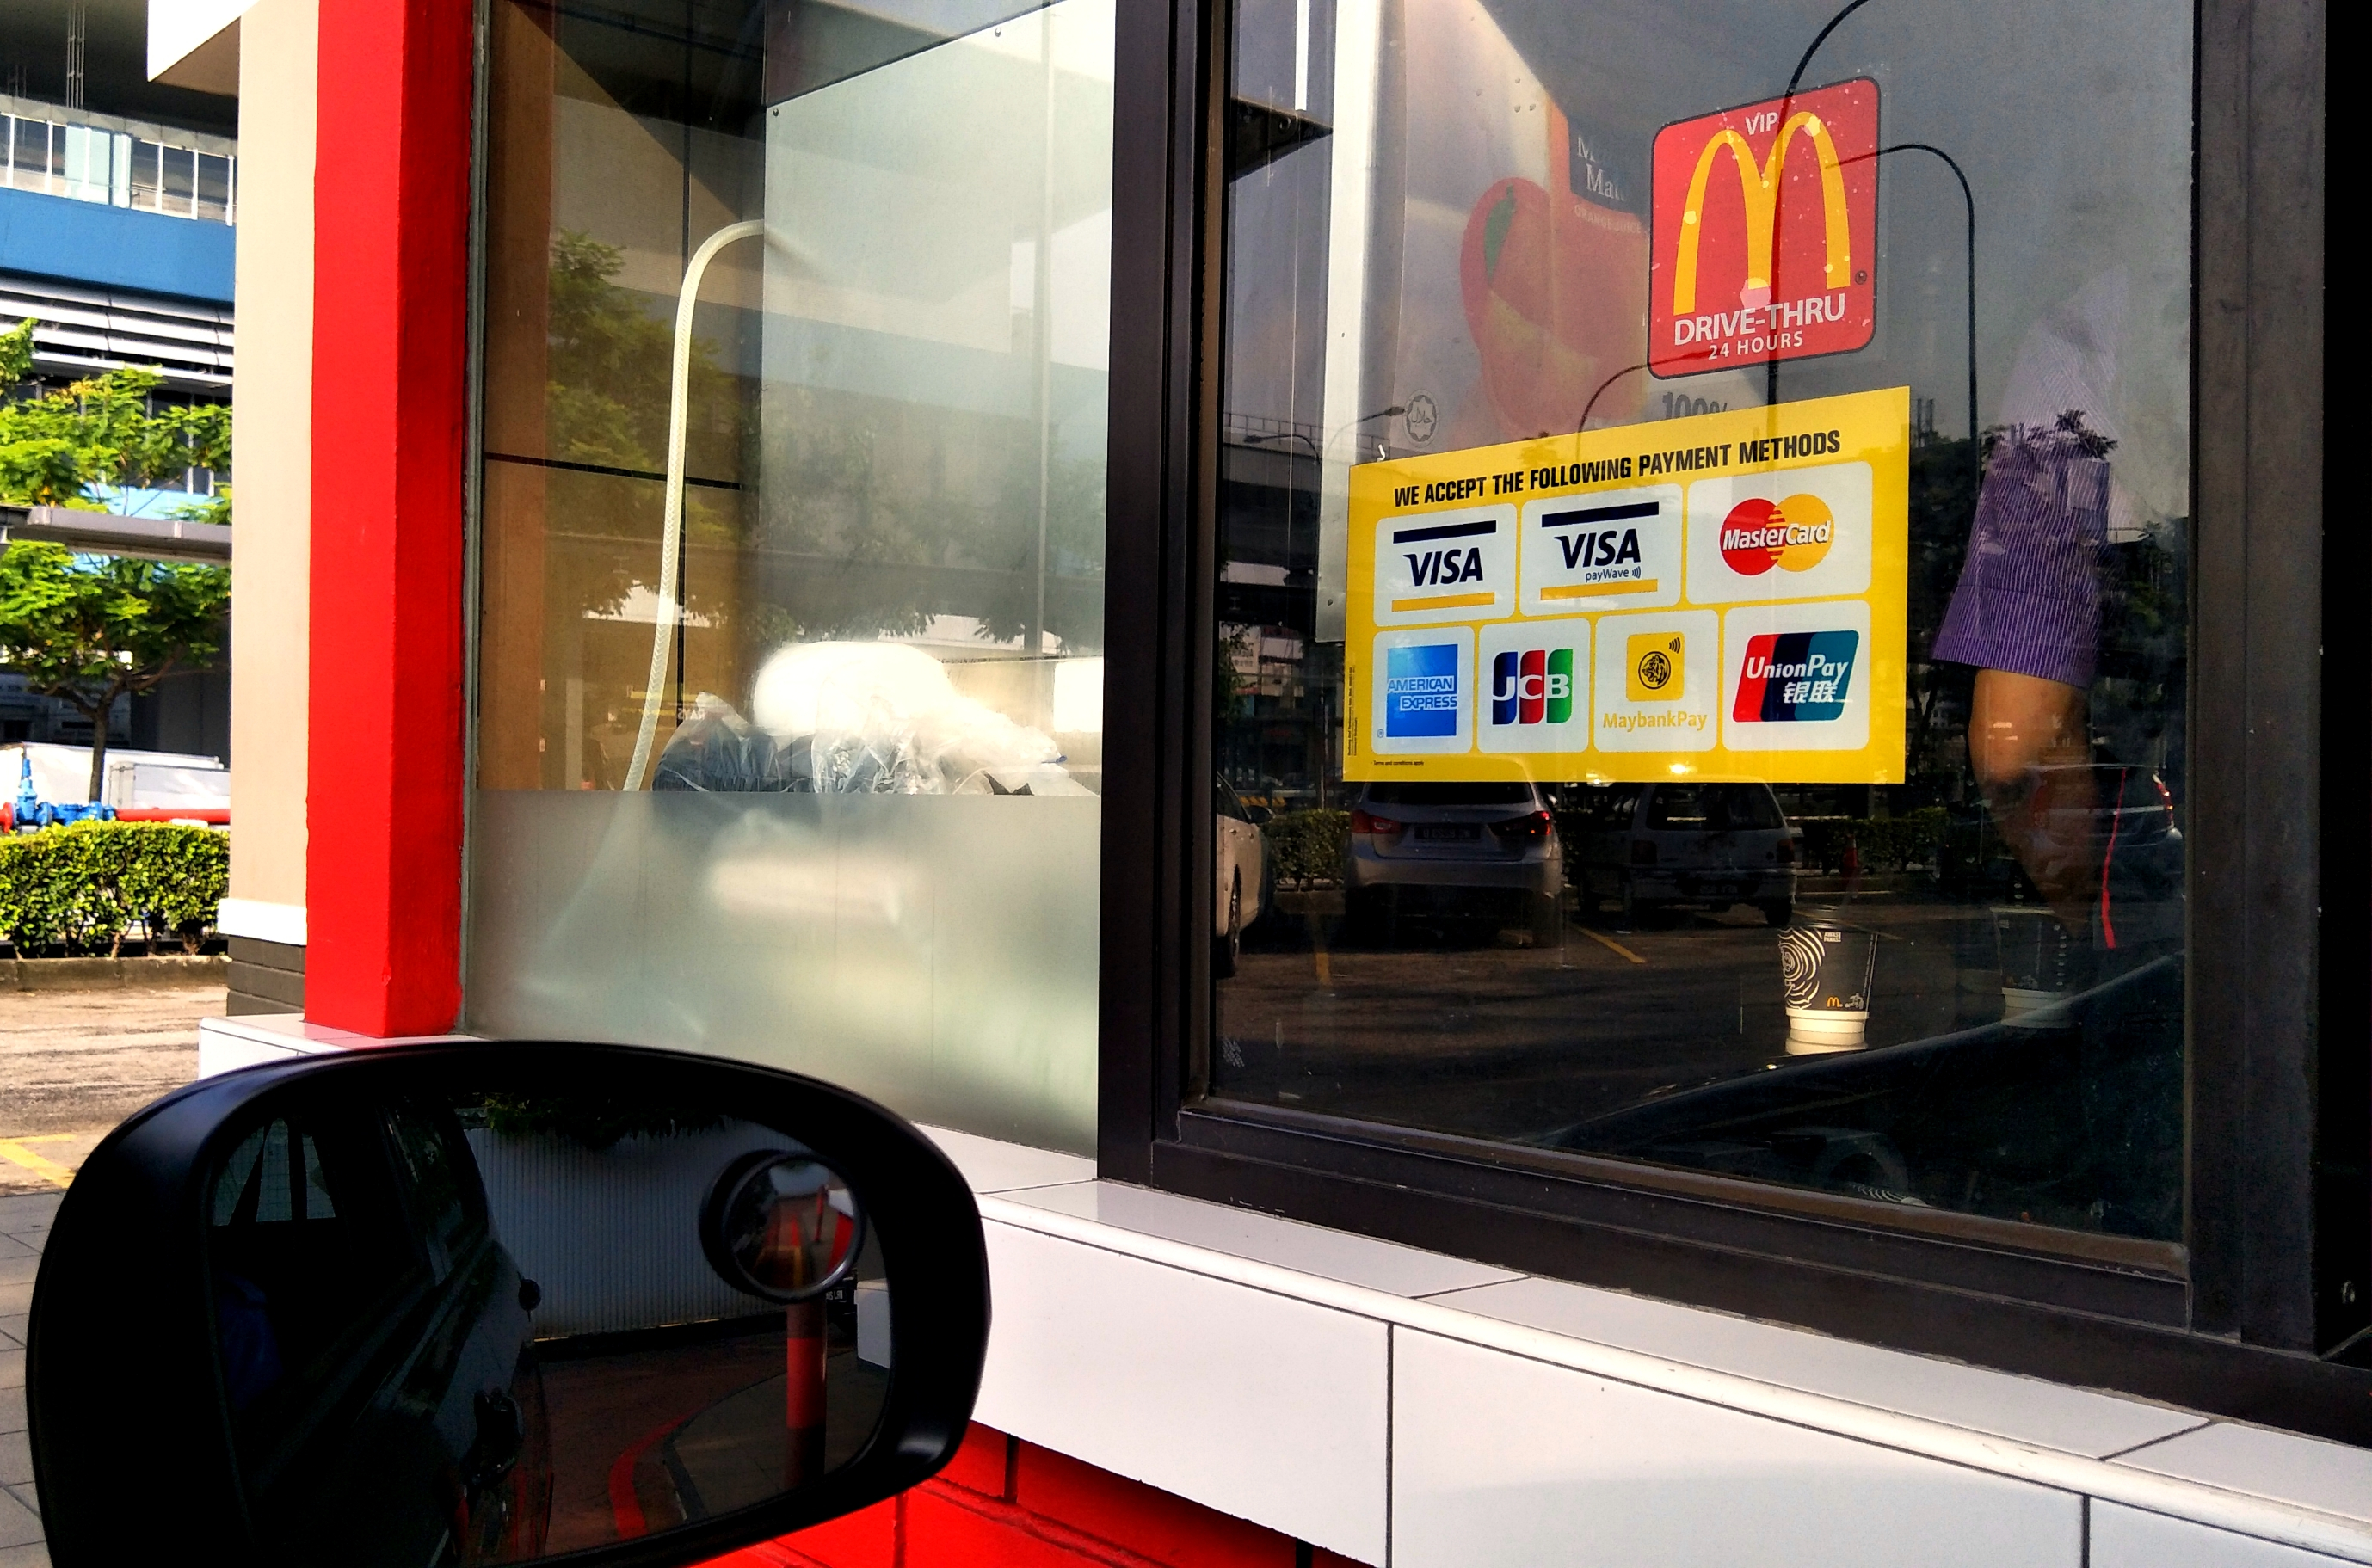 Drive-Thru Customer Experiences facts